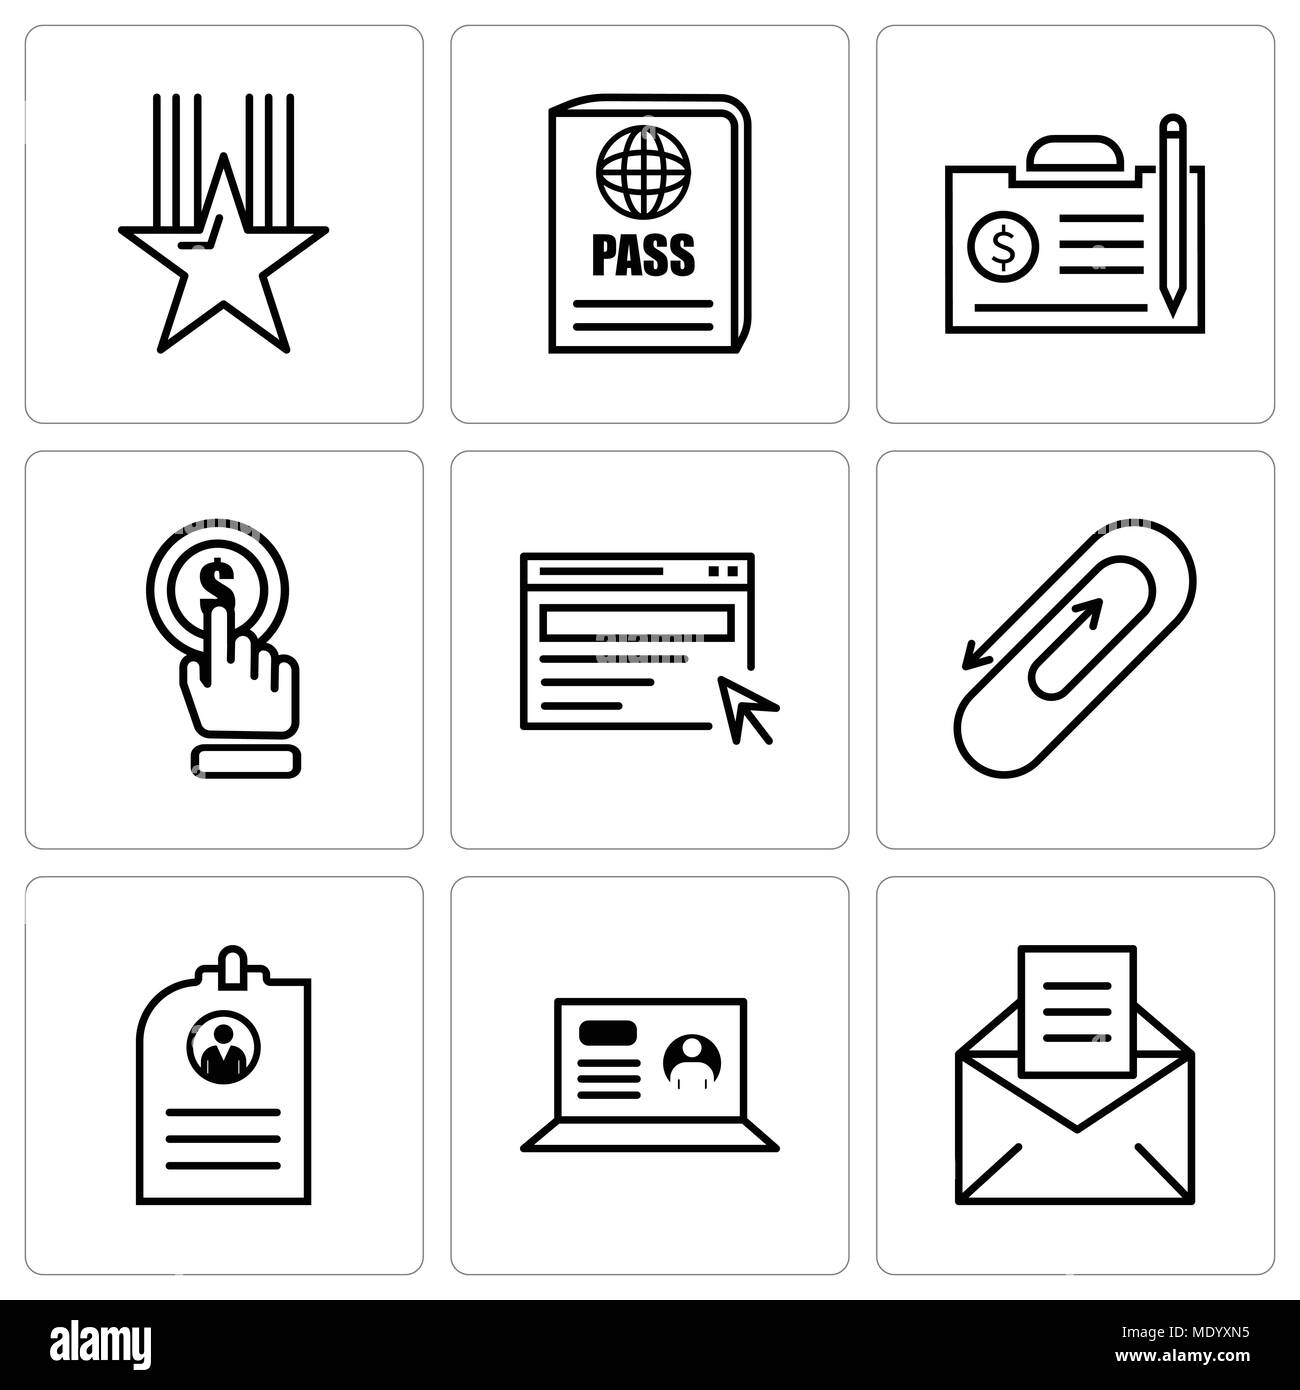 resume vector icons set stock photos  u0026 resume vector icons